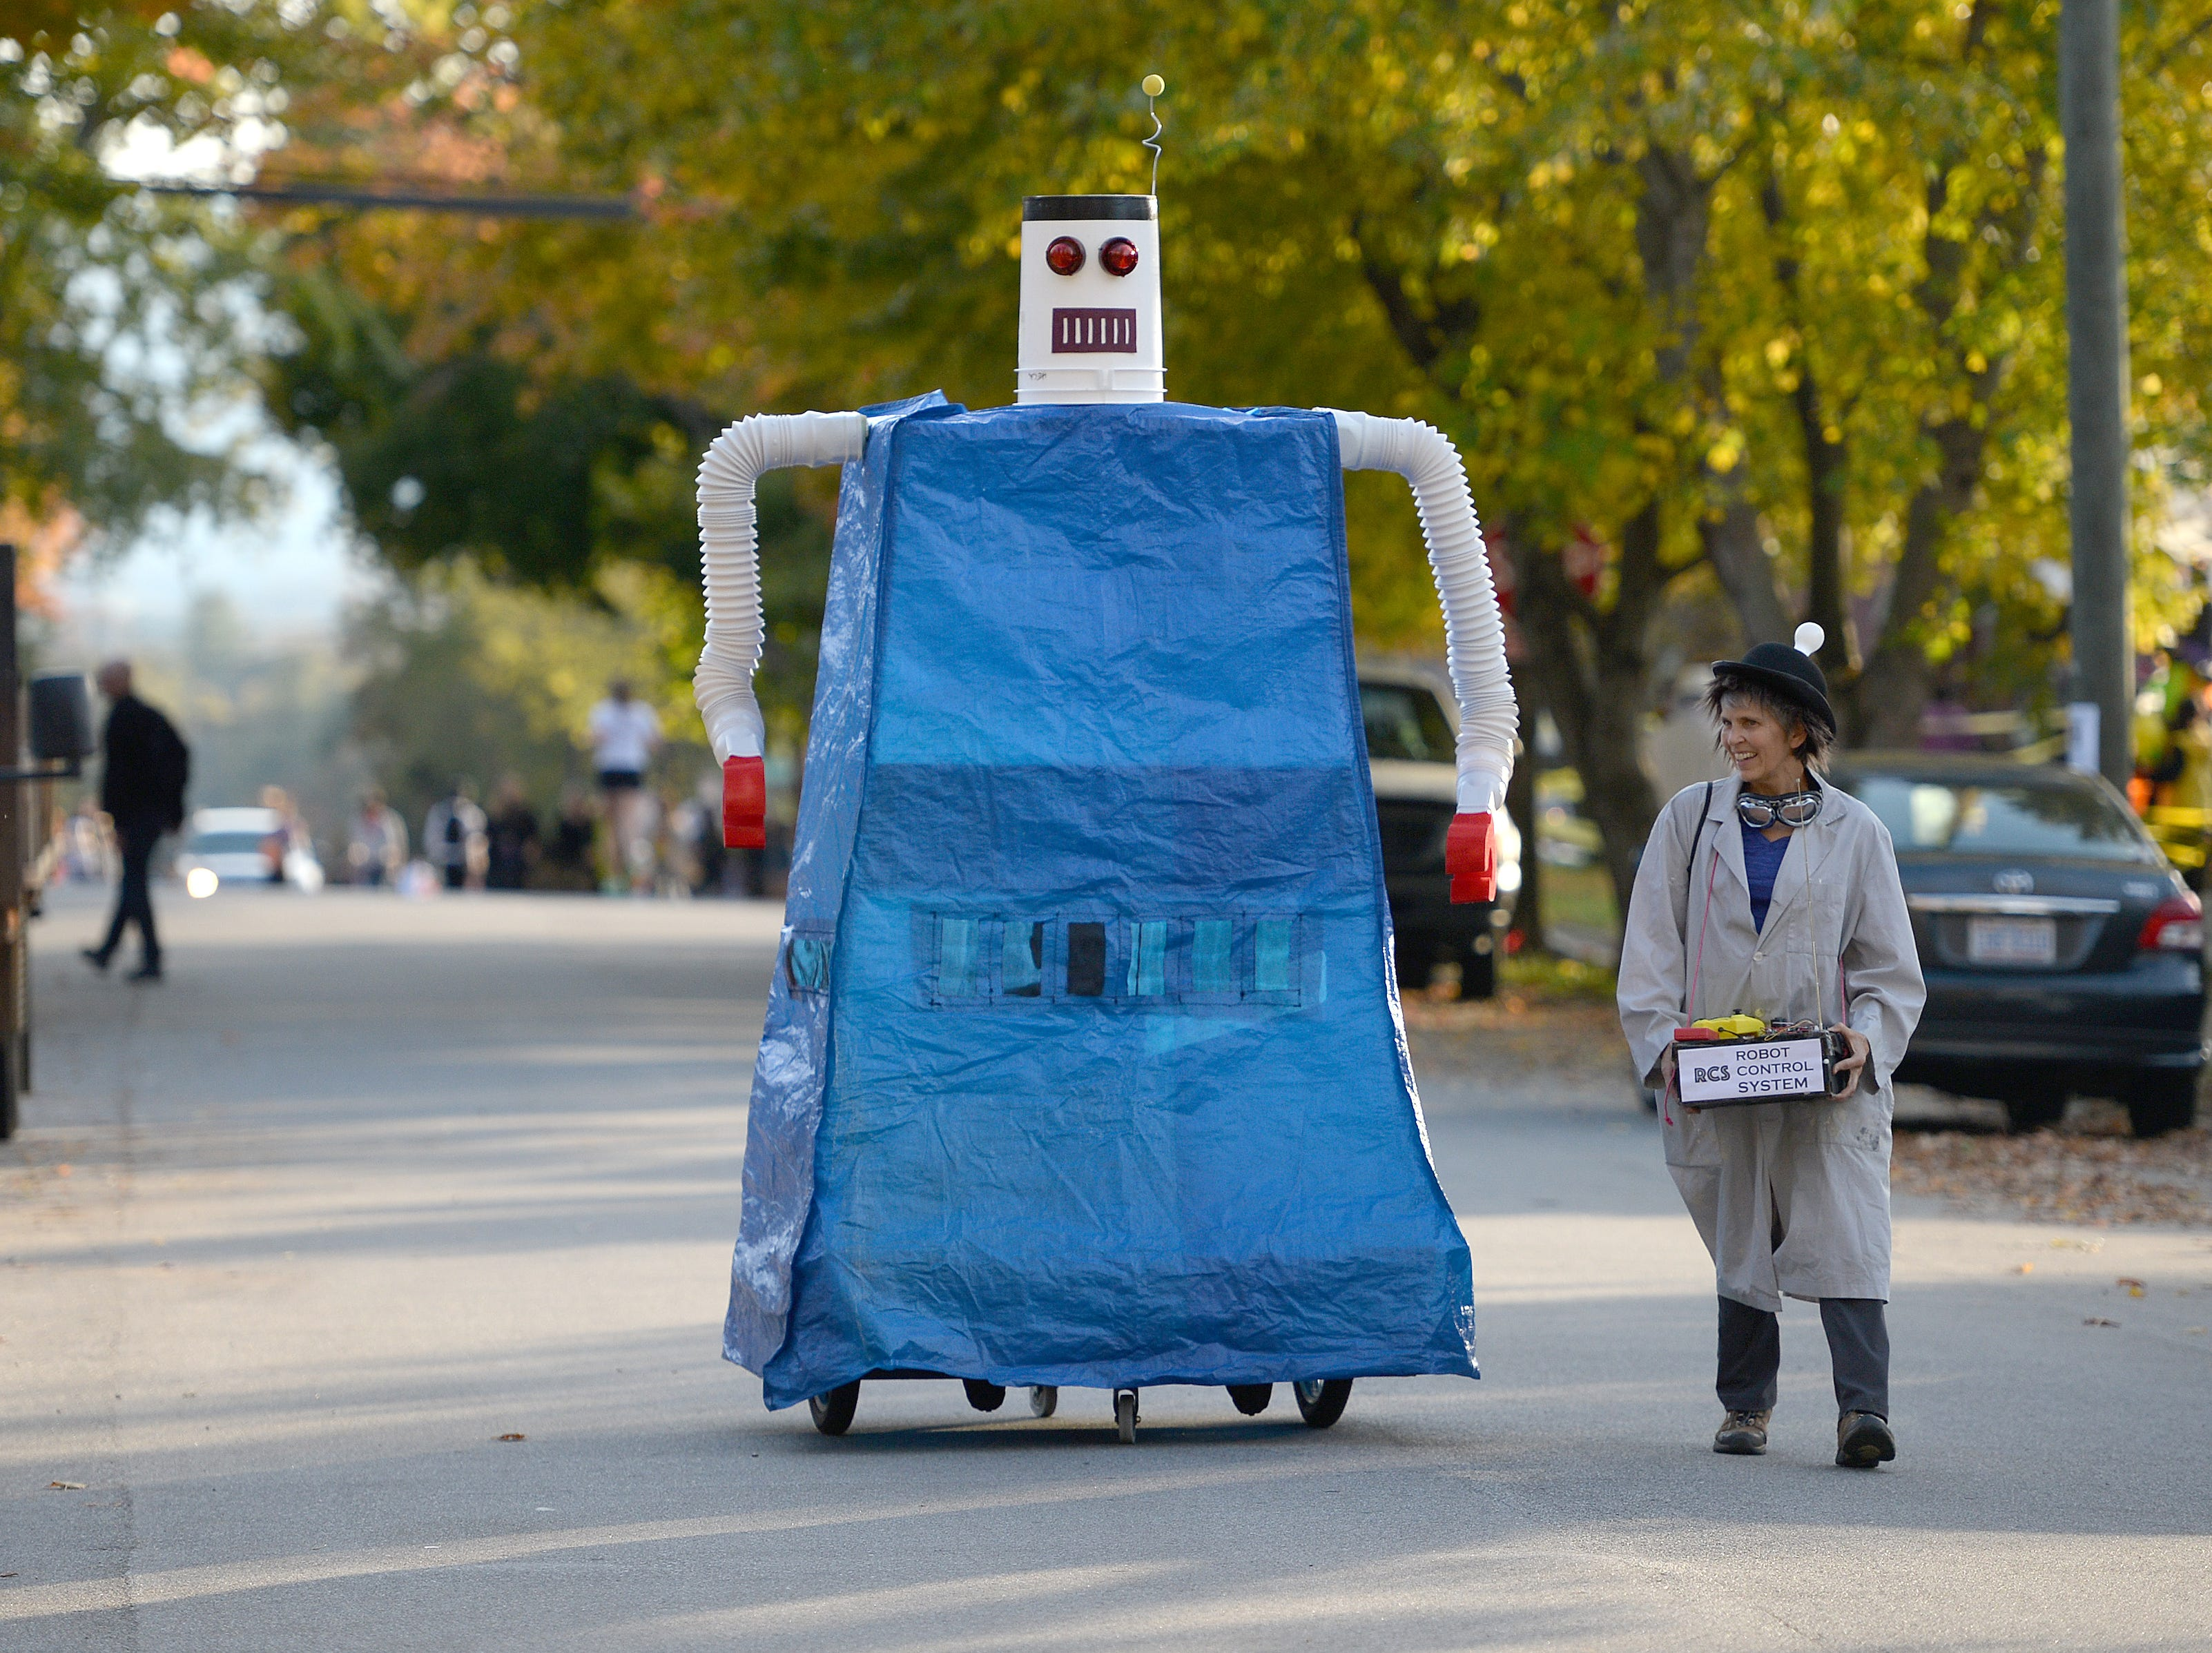 Trick-or-treaters made their way up and down Vermont Avenue in search of candy during the street's annual Halloween celebration on Oct. 31, 2018.